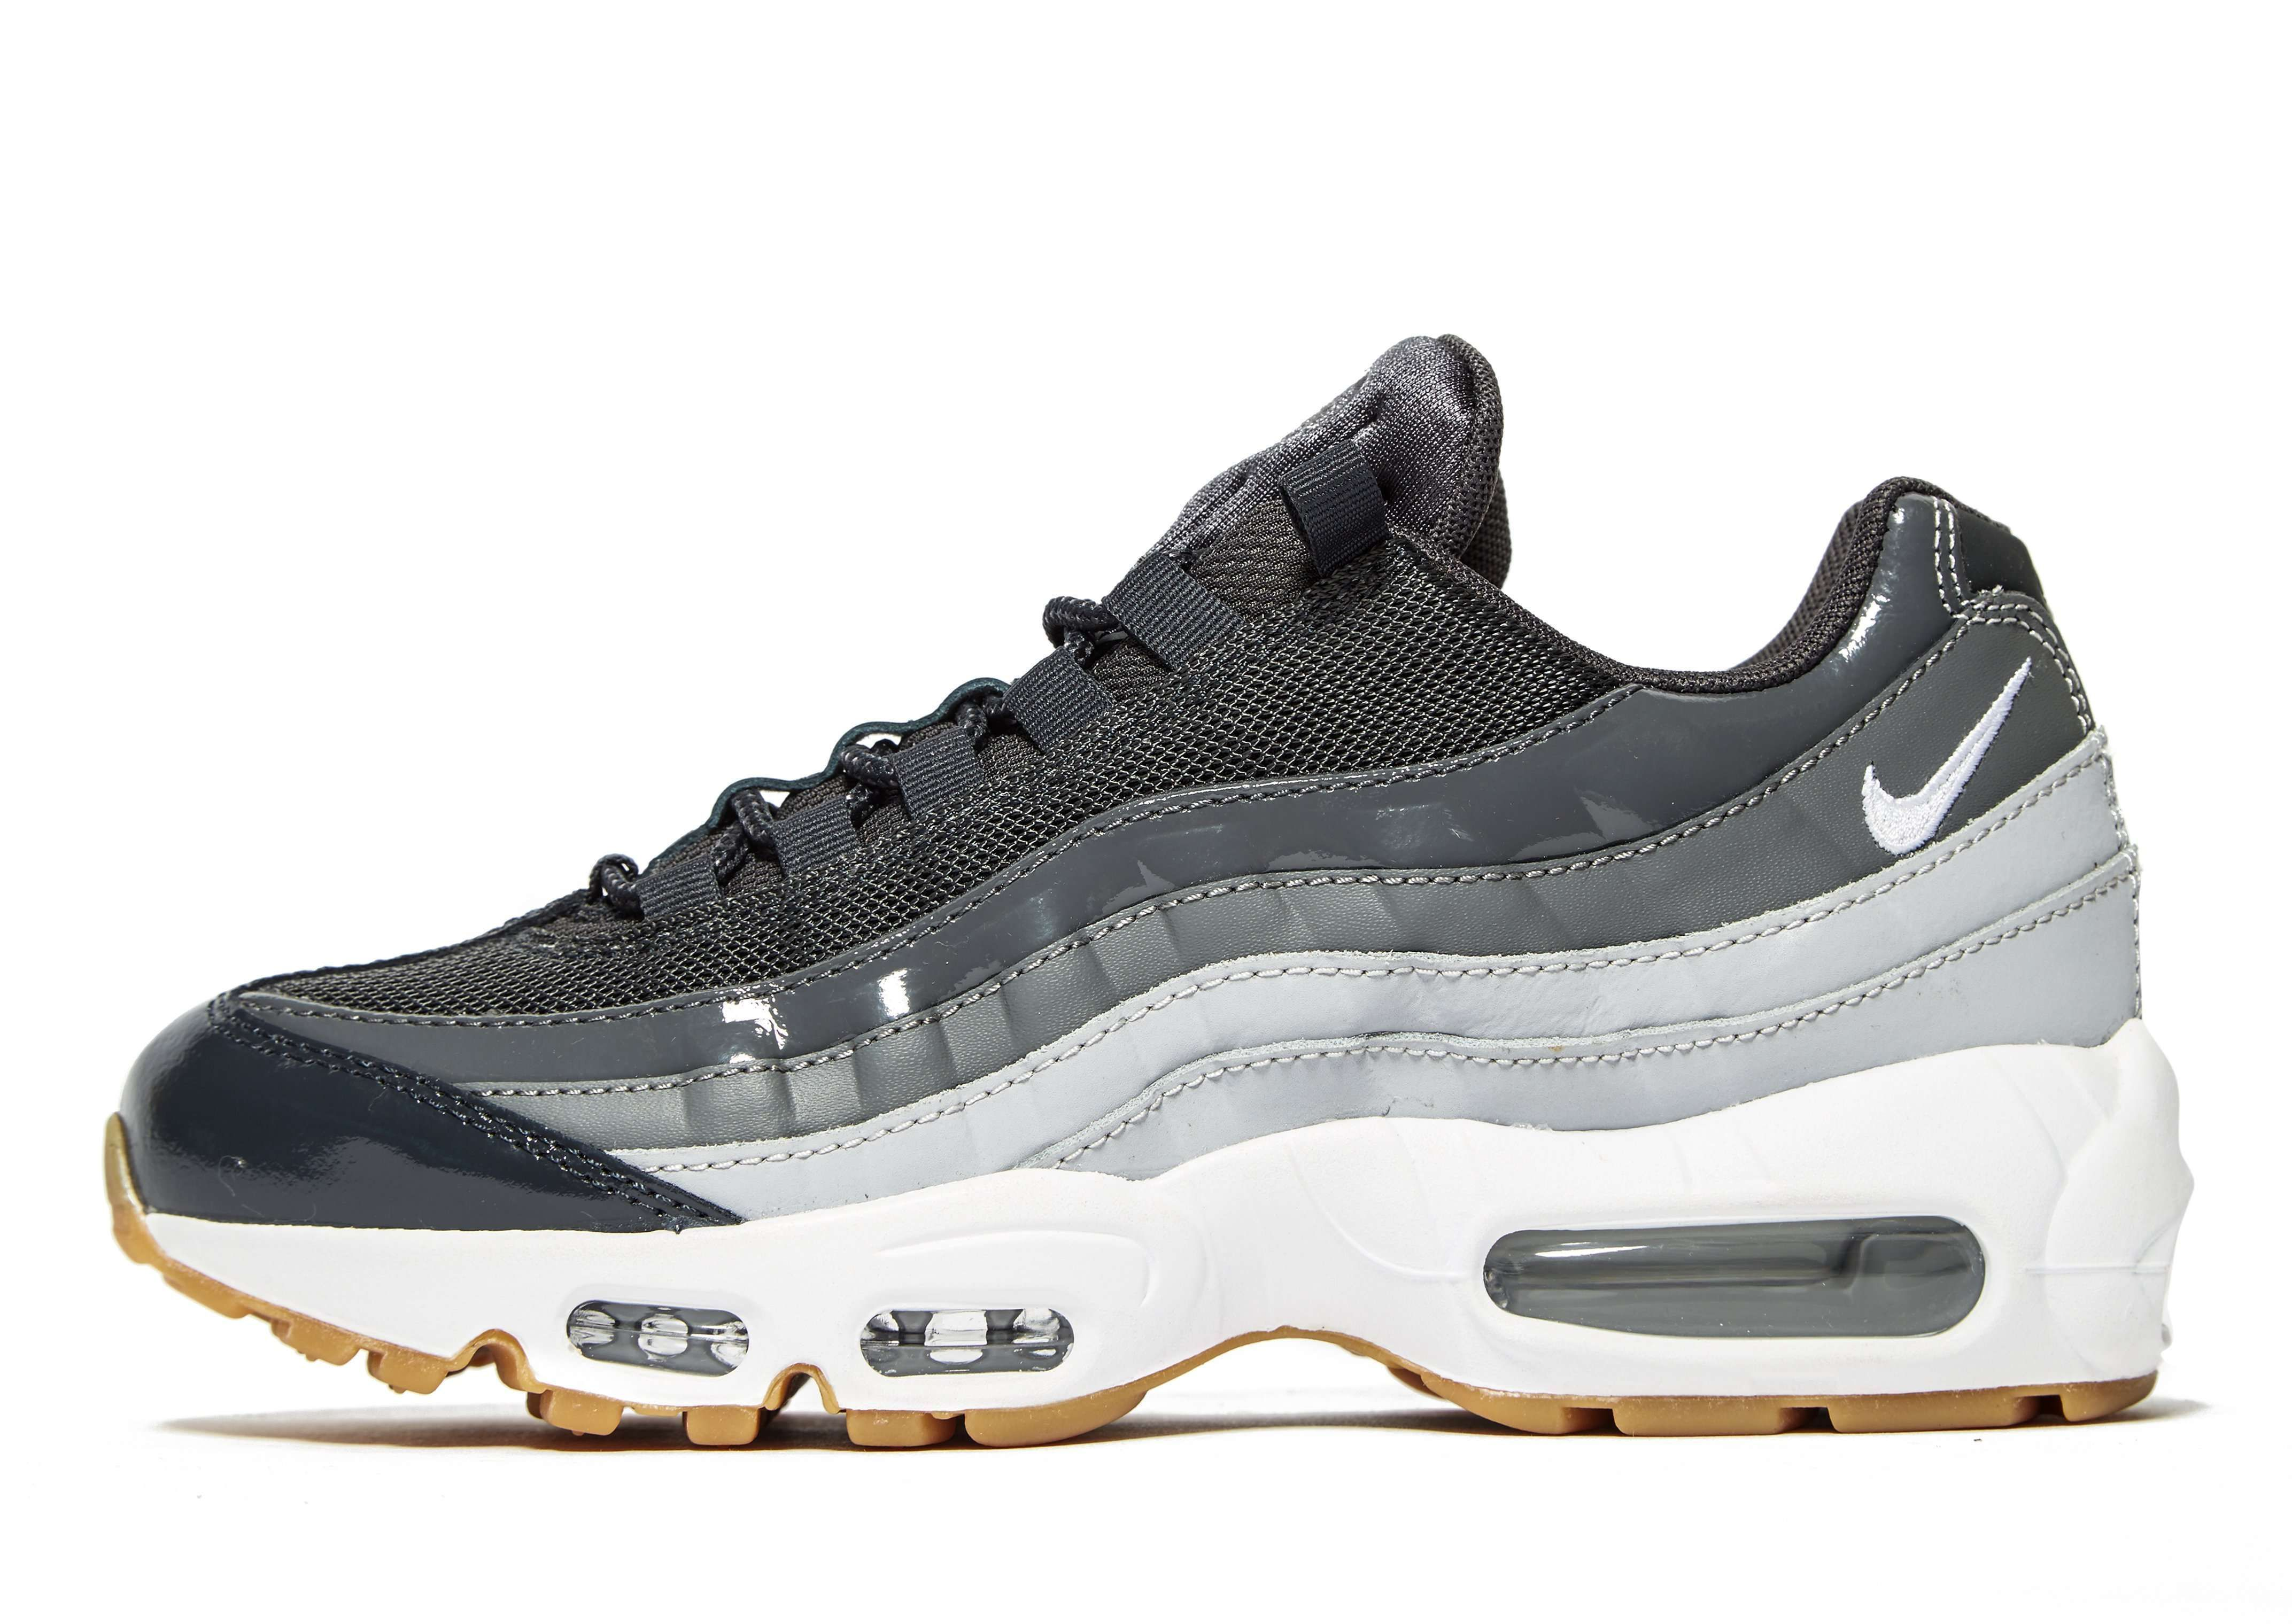 Nike Air Max 95 Women s - Shop online for Nike Air Max 95 Women s with JD  Sports 97bd4d8e1a